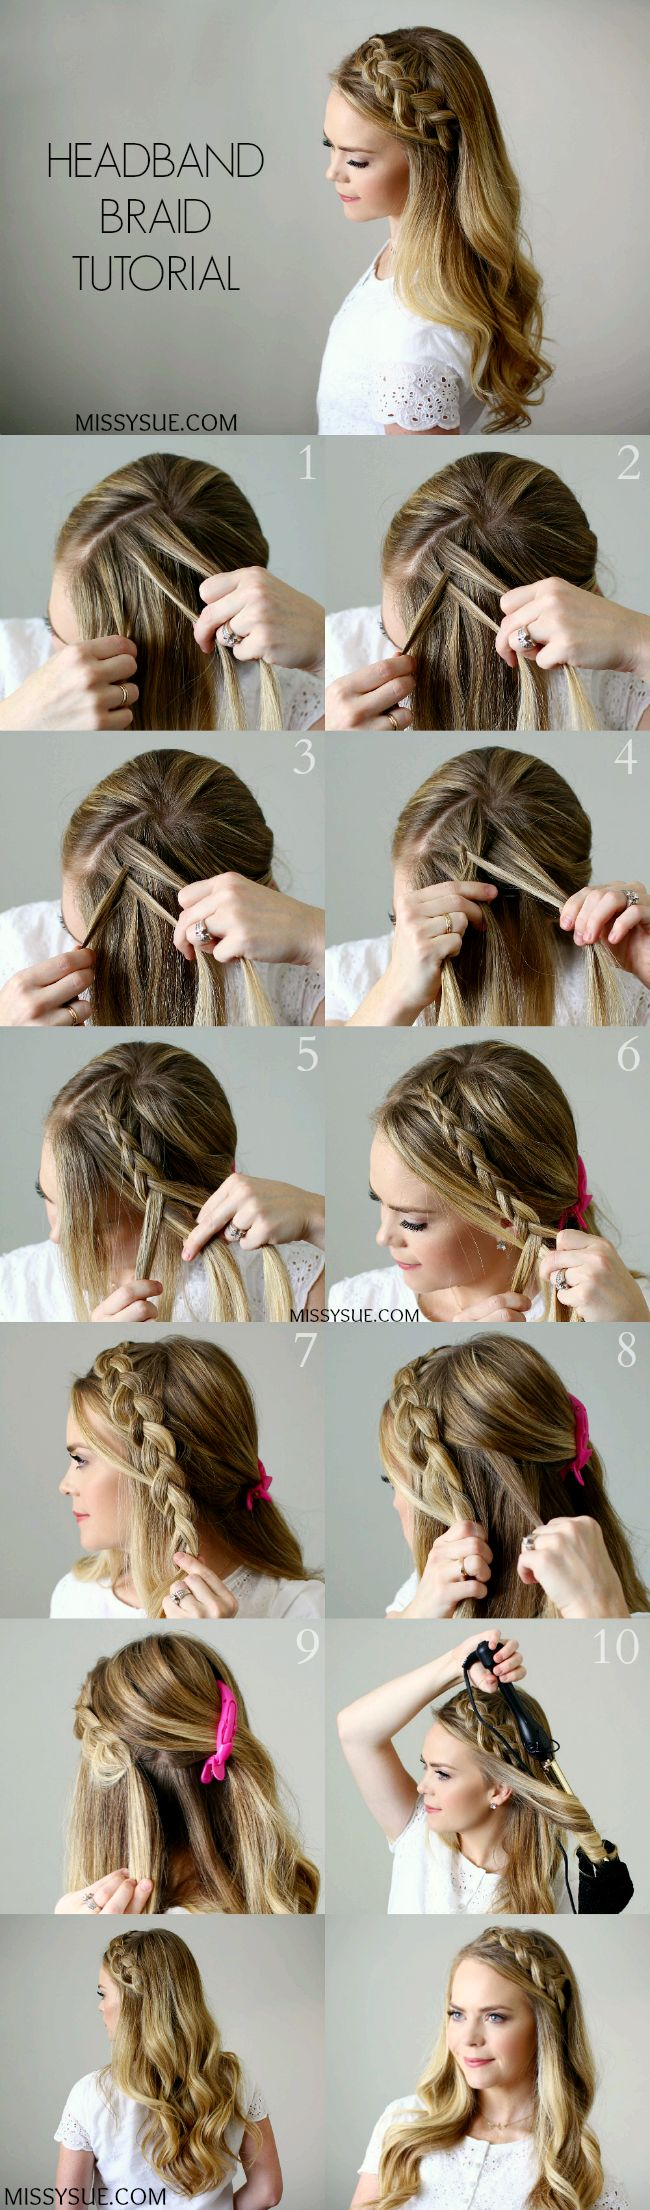 best 25+ dutch braids ideas on pinterest | braids, double dutch